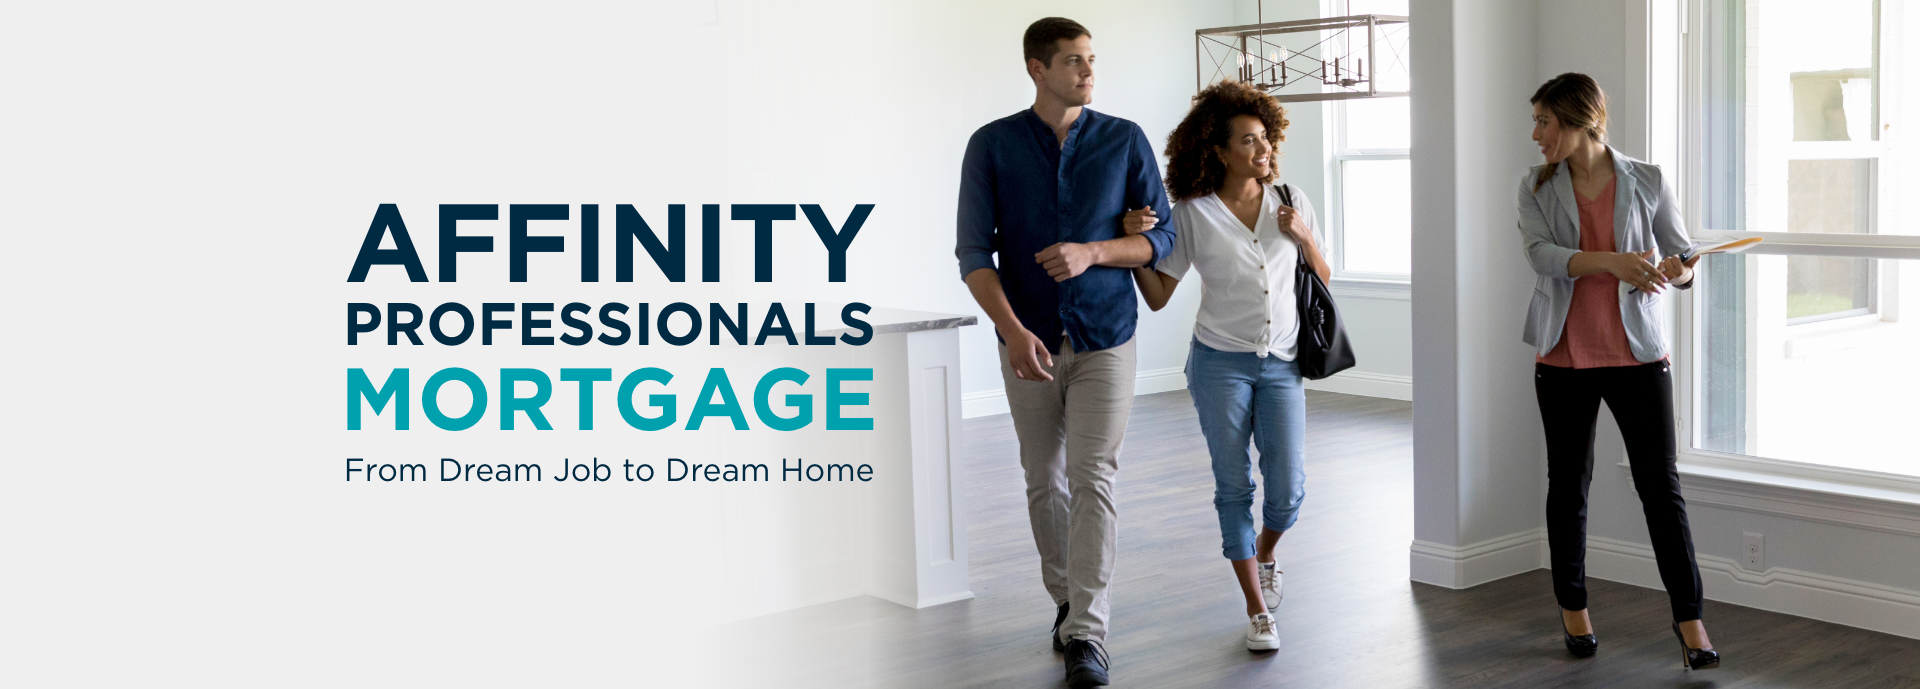 Affinity Professionals Mortgage